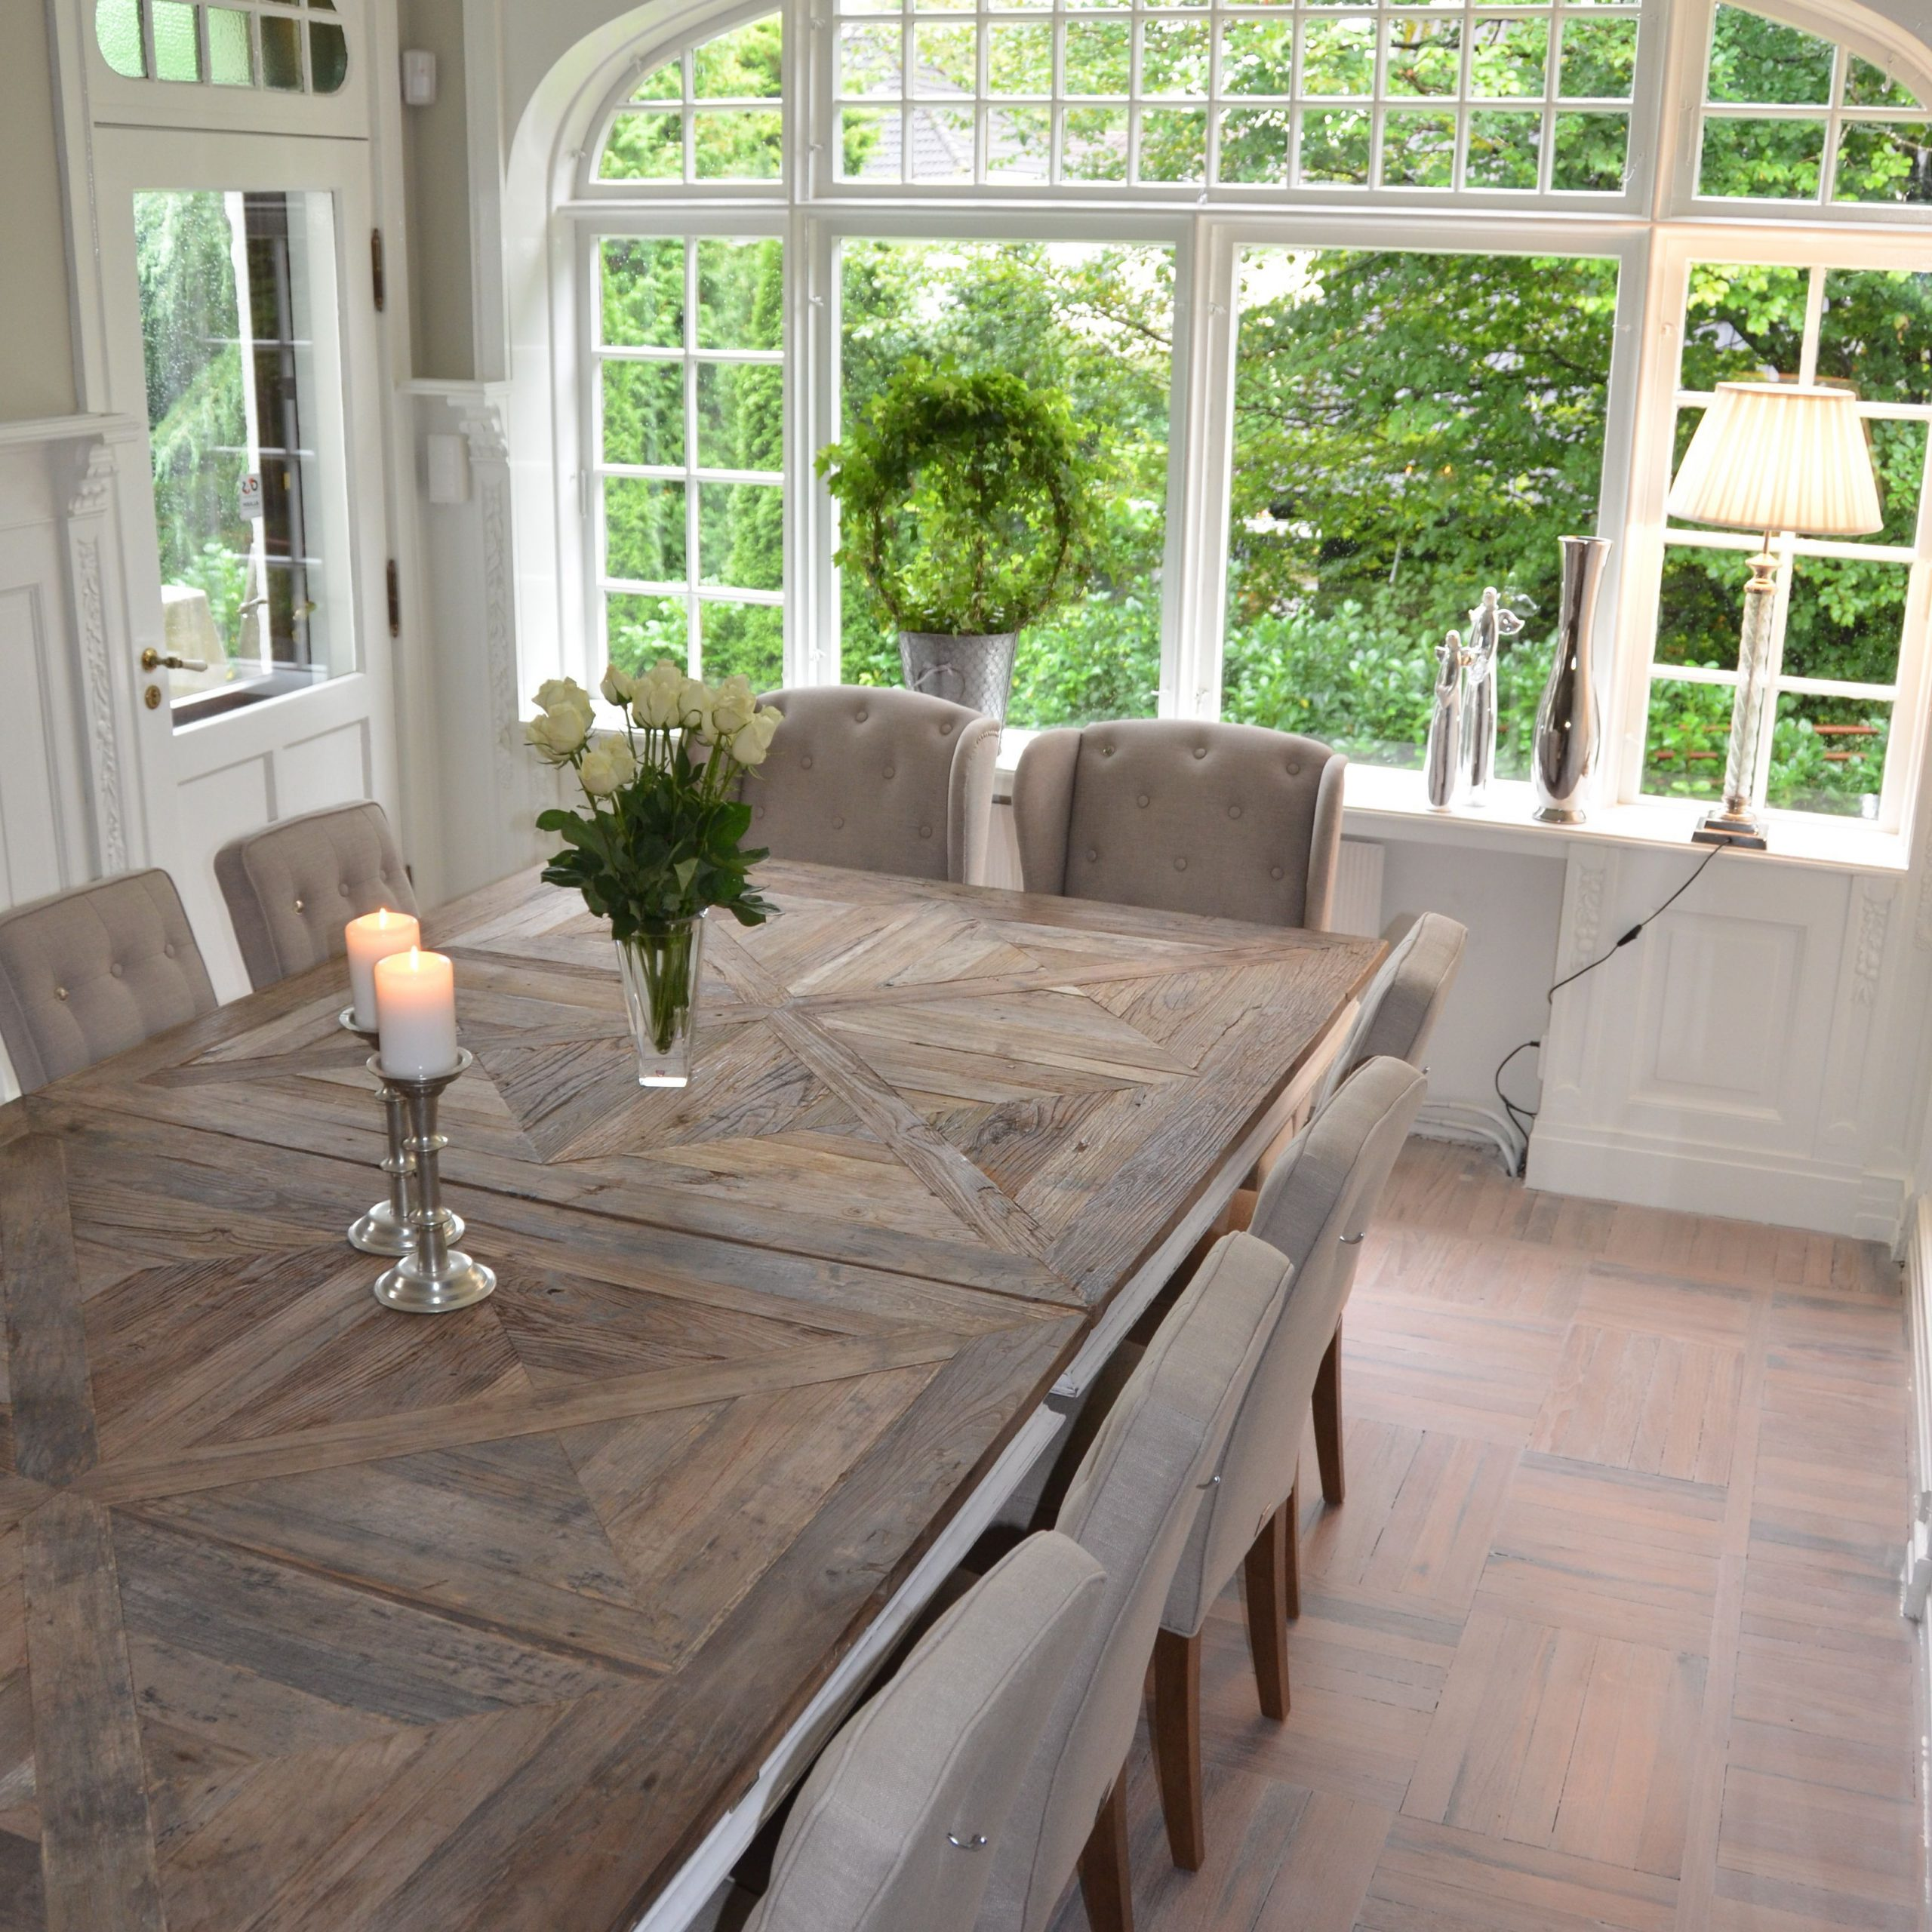 Most Recently Released Large Rustic Look Dining Tables Regarding Farmhouse Dining Table Ideas For Cozy, Rustic Look (View 3 of 30)